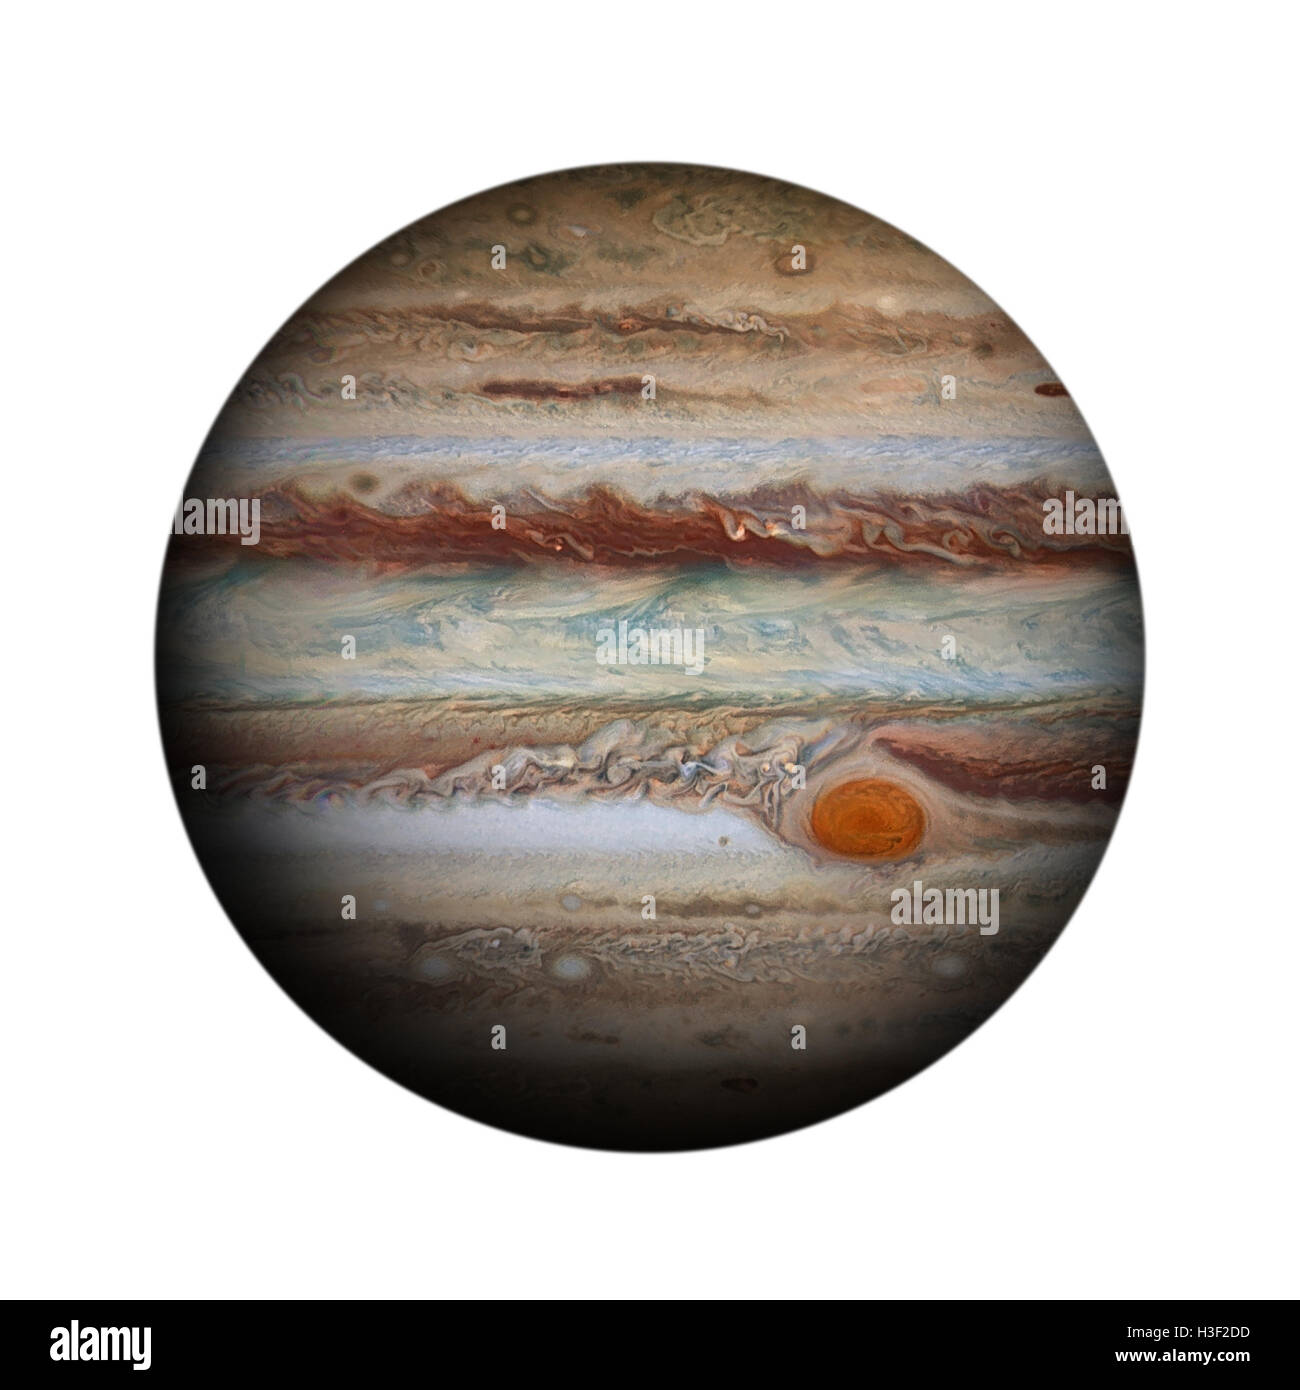 Solar System - Jupiter. Isolated planet on white background. Elements of this image furnished by NASA - Stock Image